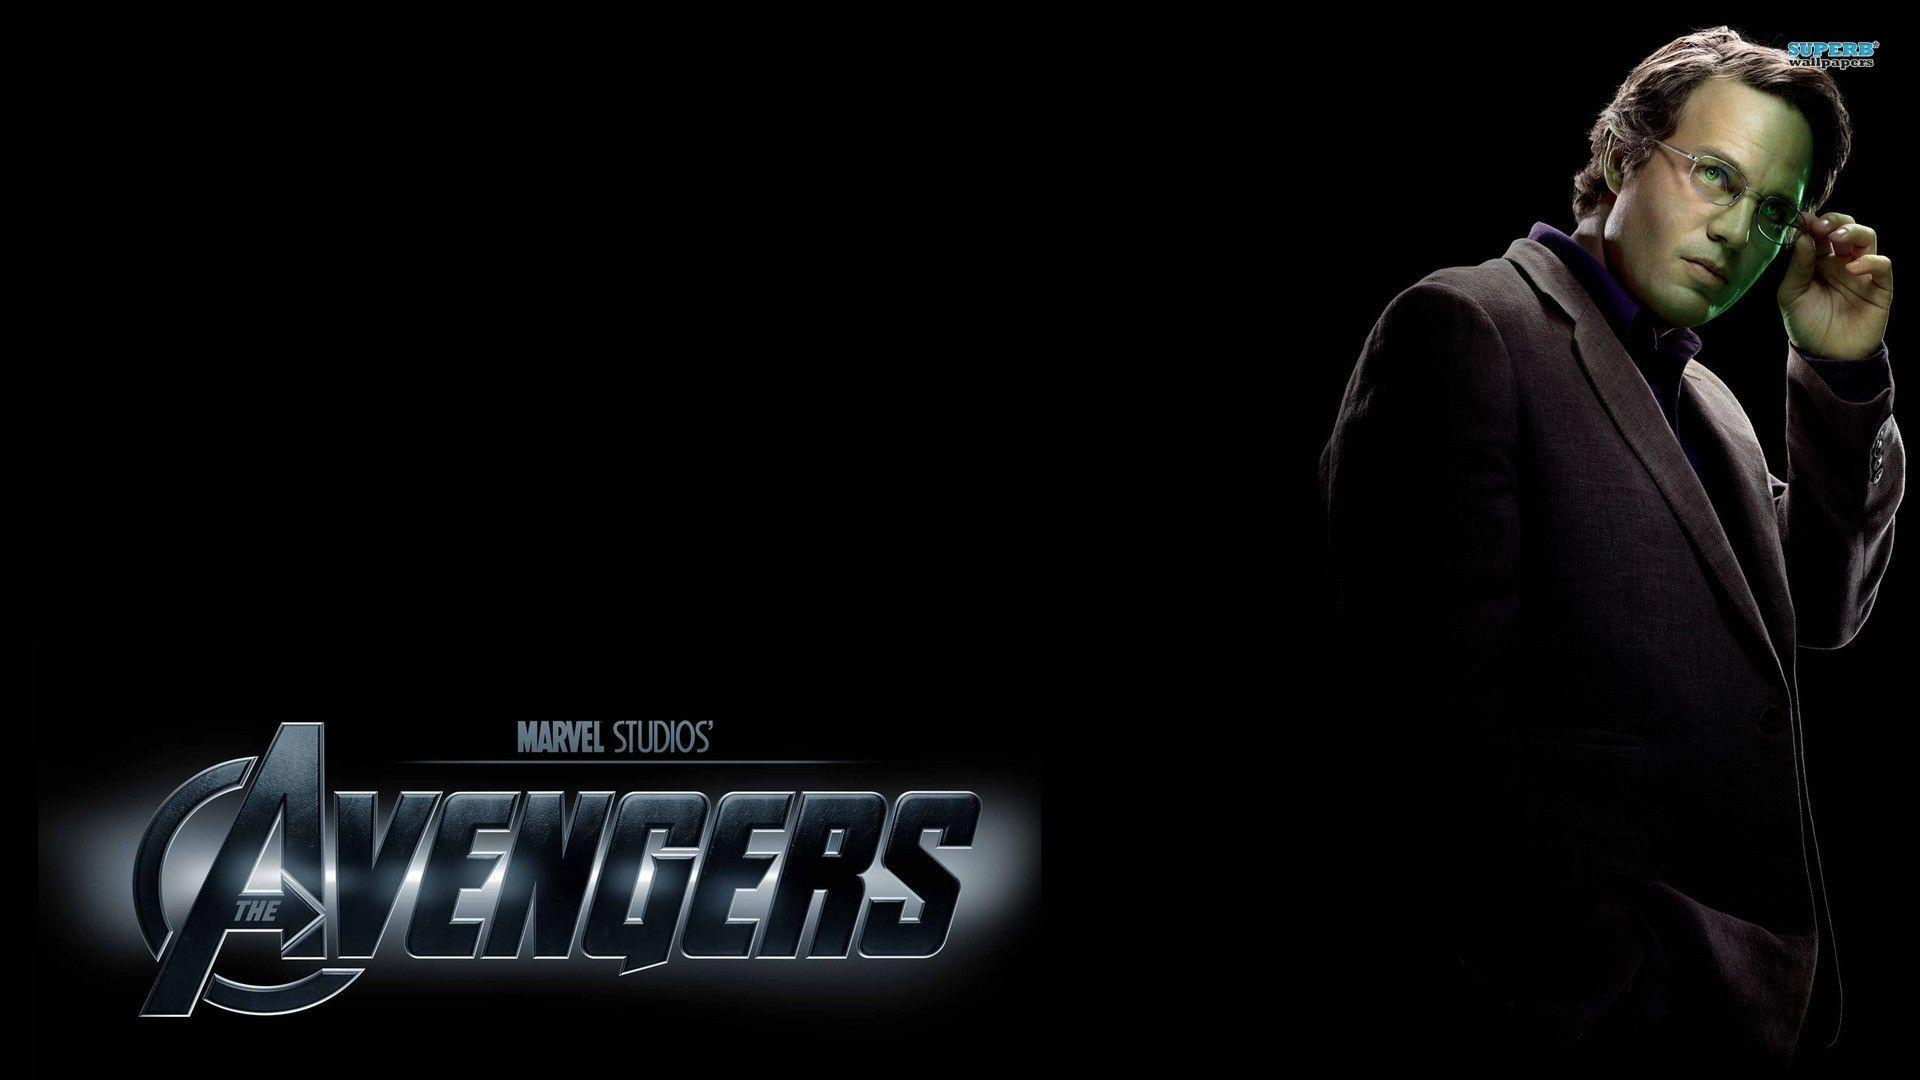 Wallpapers : Hulk, The Avengers, Bruce Banner, Mark Ruffalo